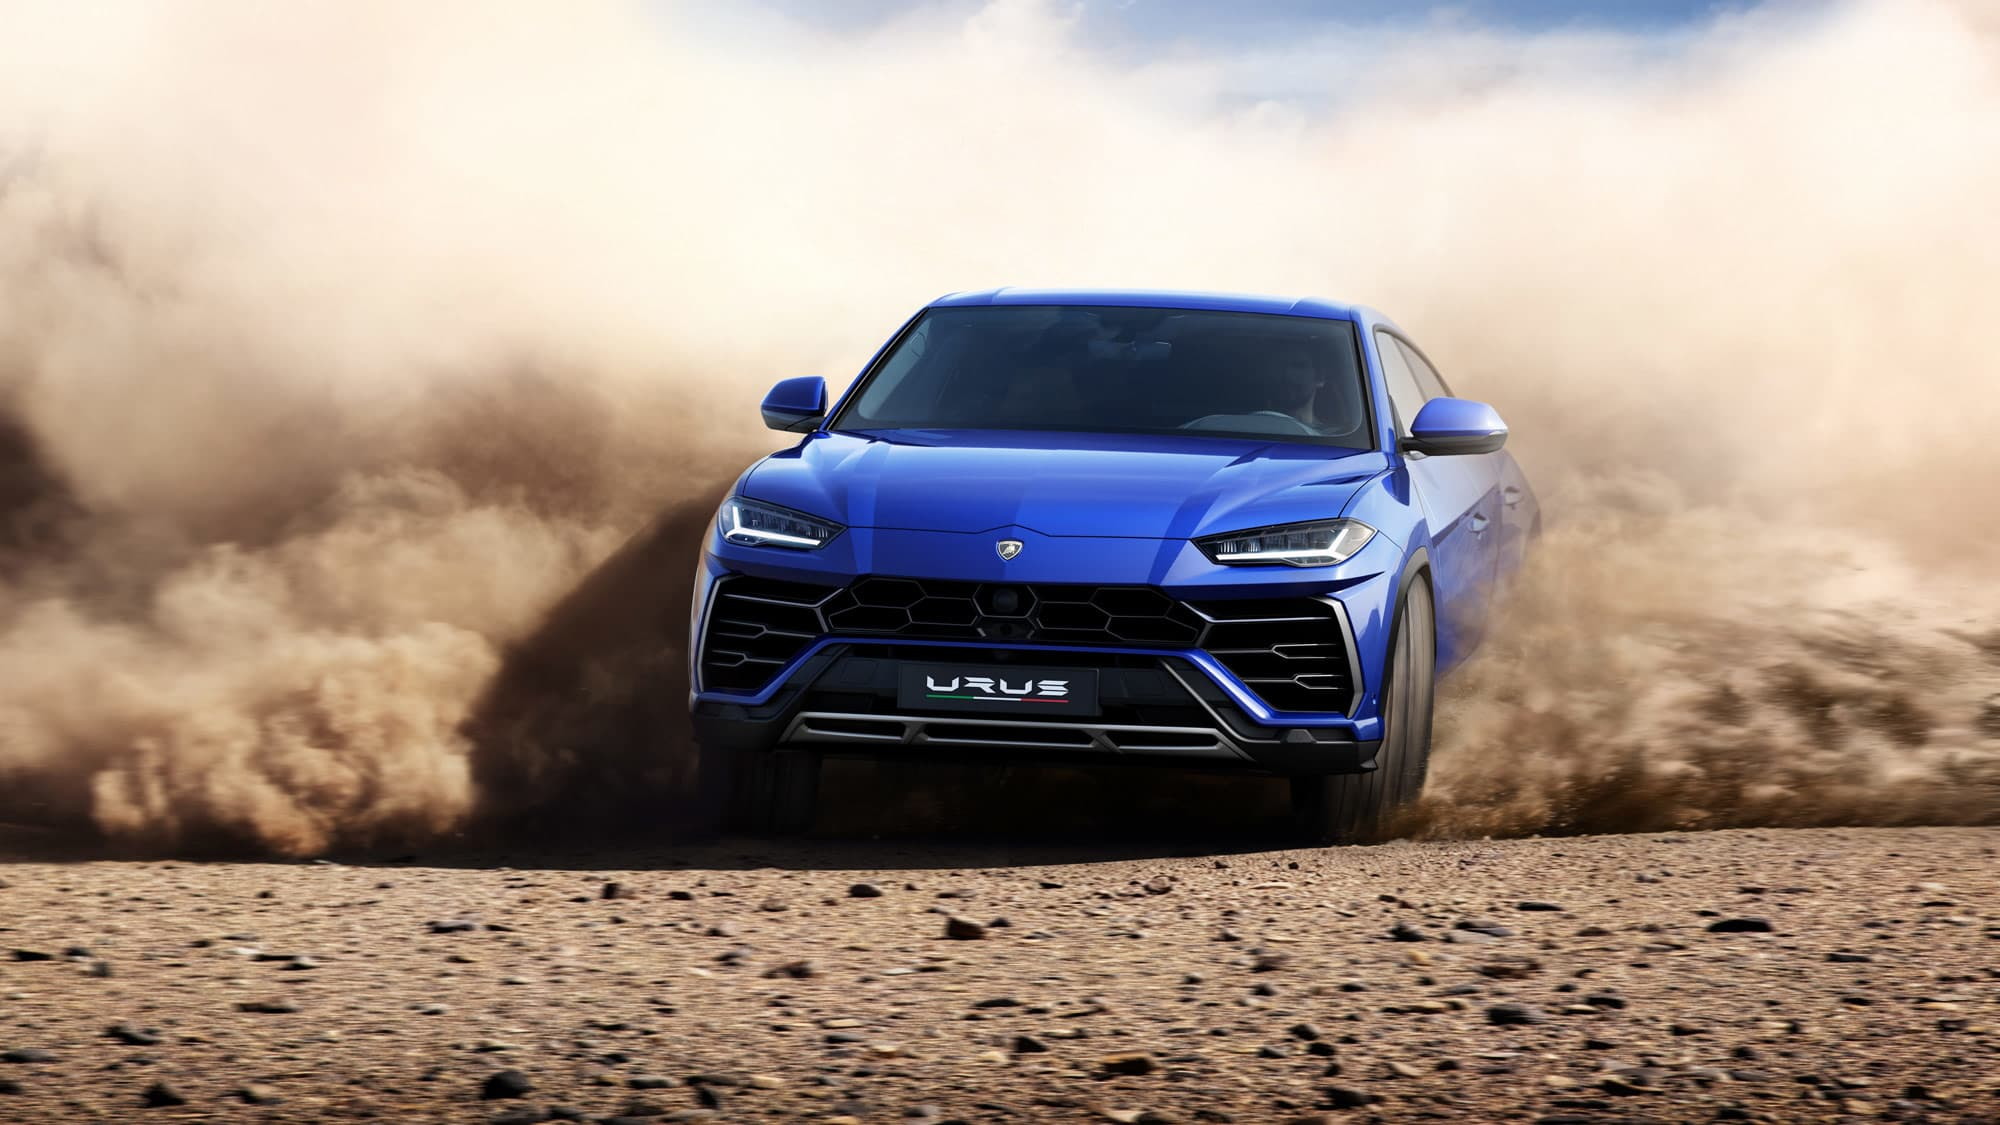 Lamborghini S 200 000 Suv Sales Are Better Than Expected Ceo